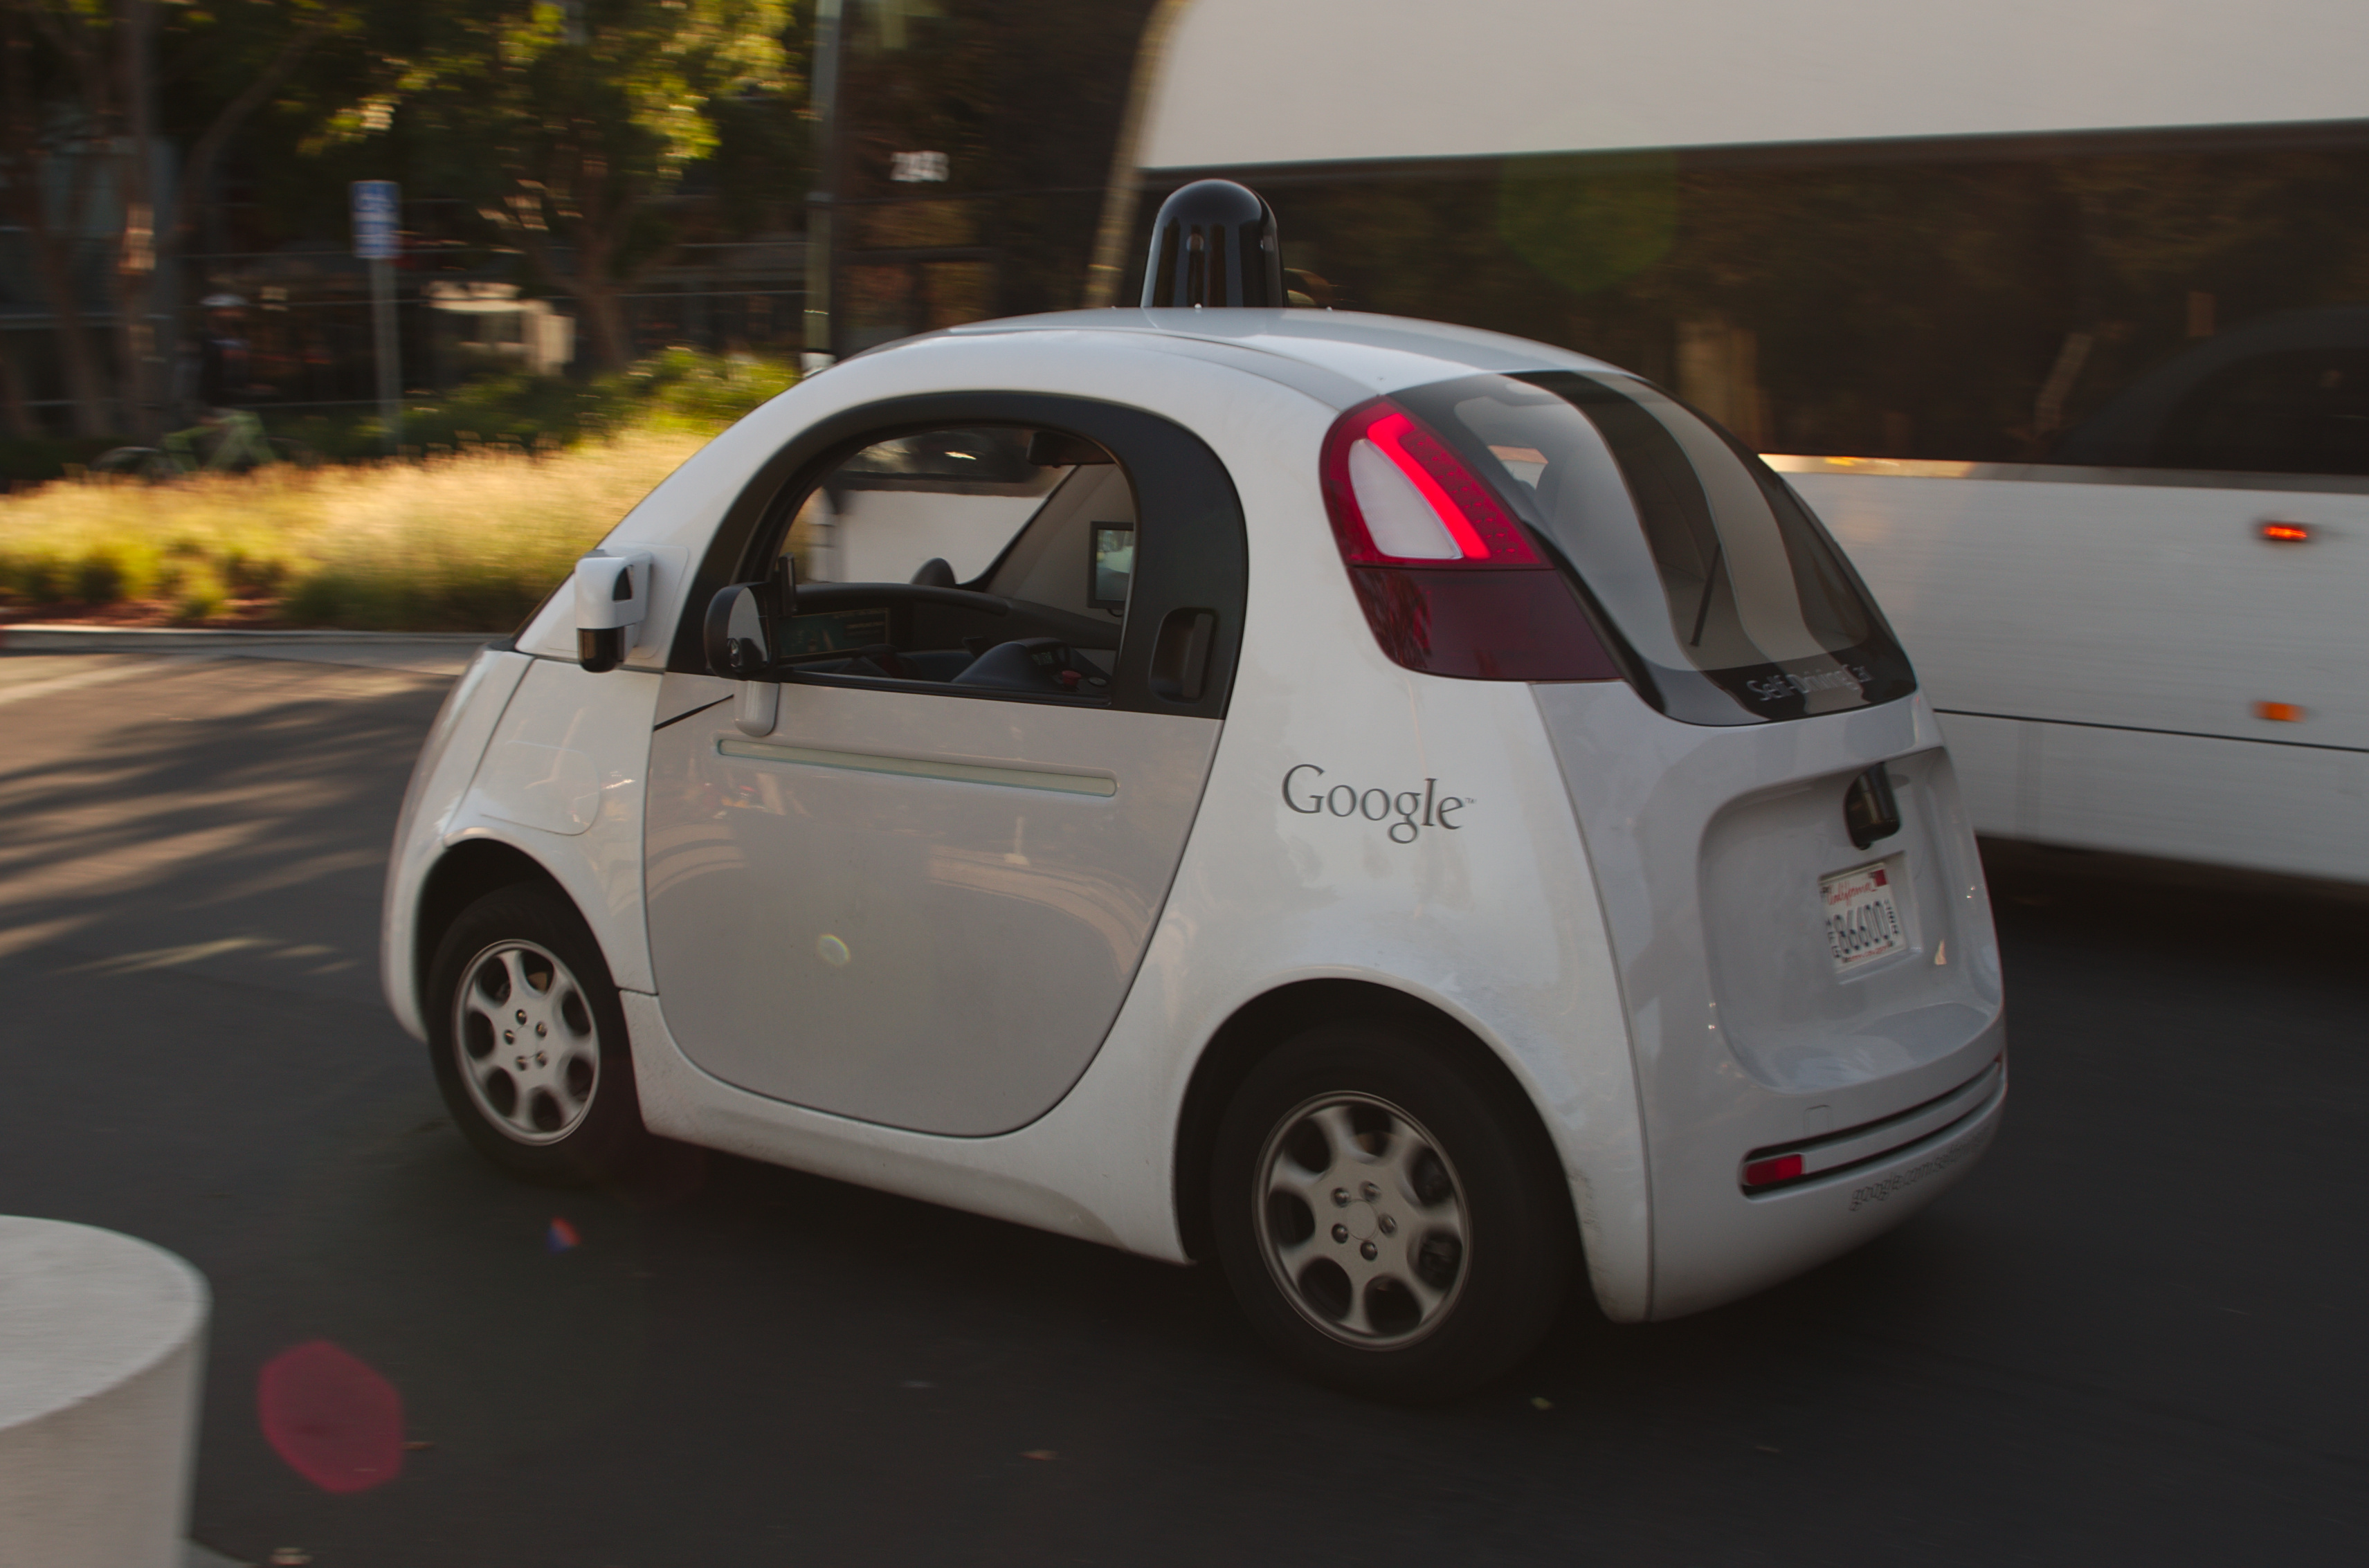 Picture of driverless car